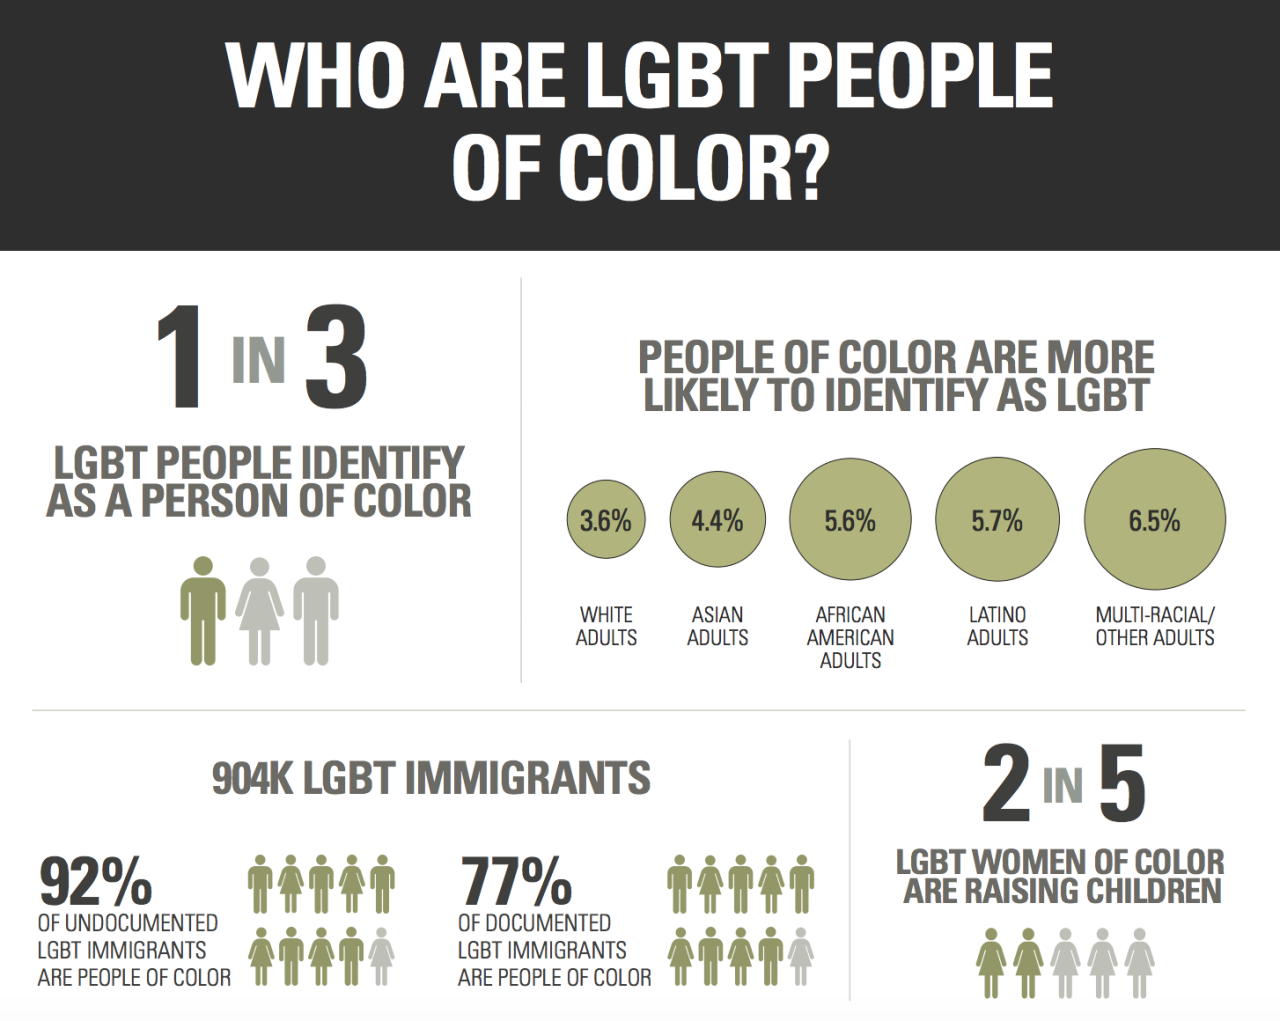 gaywrites: LGBT people of color face systemic discrimination and inequality in housing, healthcare, employment, family recognition, education, and countless other ways. Paying an Unfair Price: The Financial Penalty for LGBT People of Color is a new report by the Movement Advancement Project that examines the ins and outs of political, financial and legal landscapes for LGBT people of color. Read the full report here.